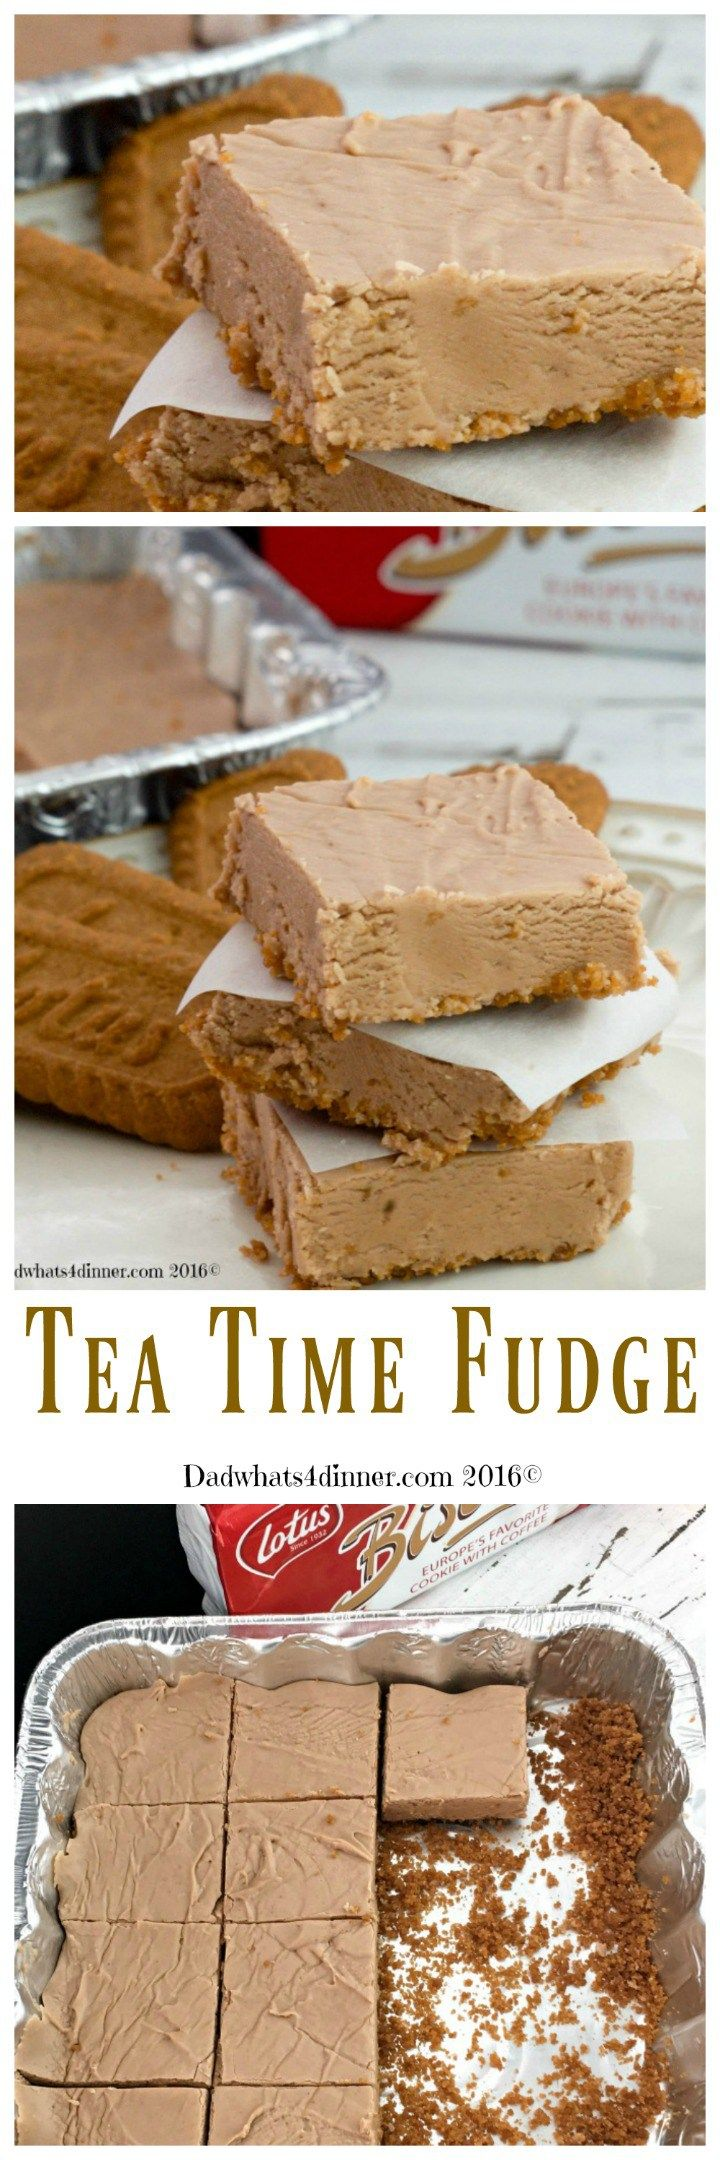 FUDGE / CARAMEL, CANDY & ICE CREAM on Pinterest | Fudge Recipes, Fudge ...